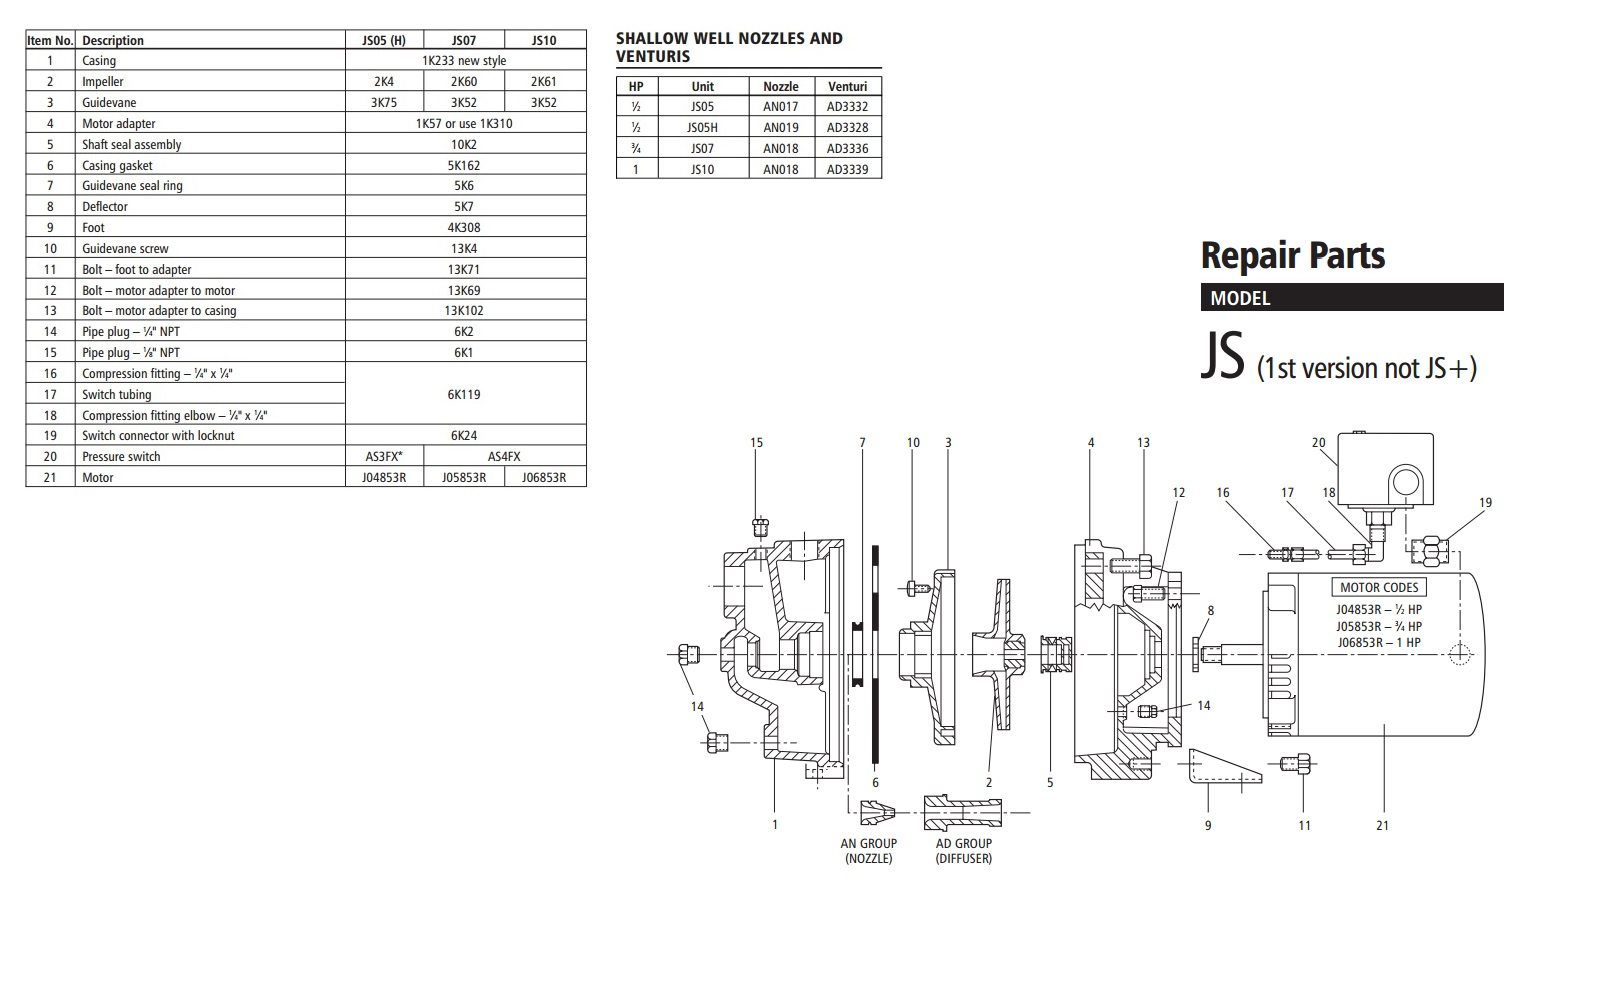 Wiring Diagram Myer